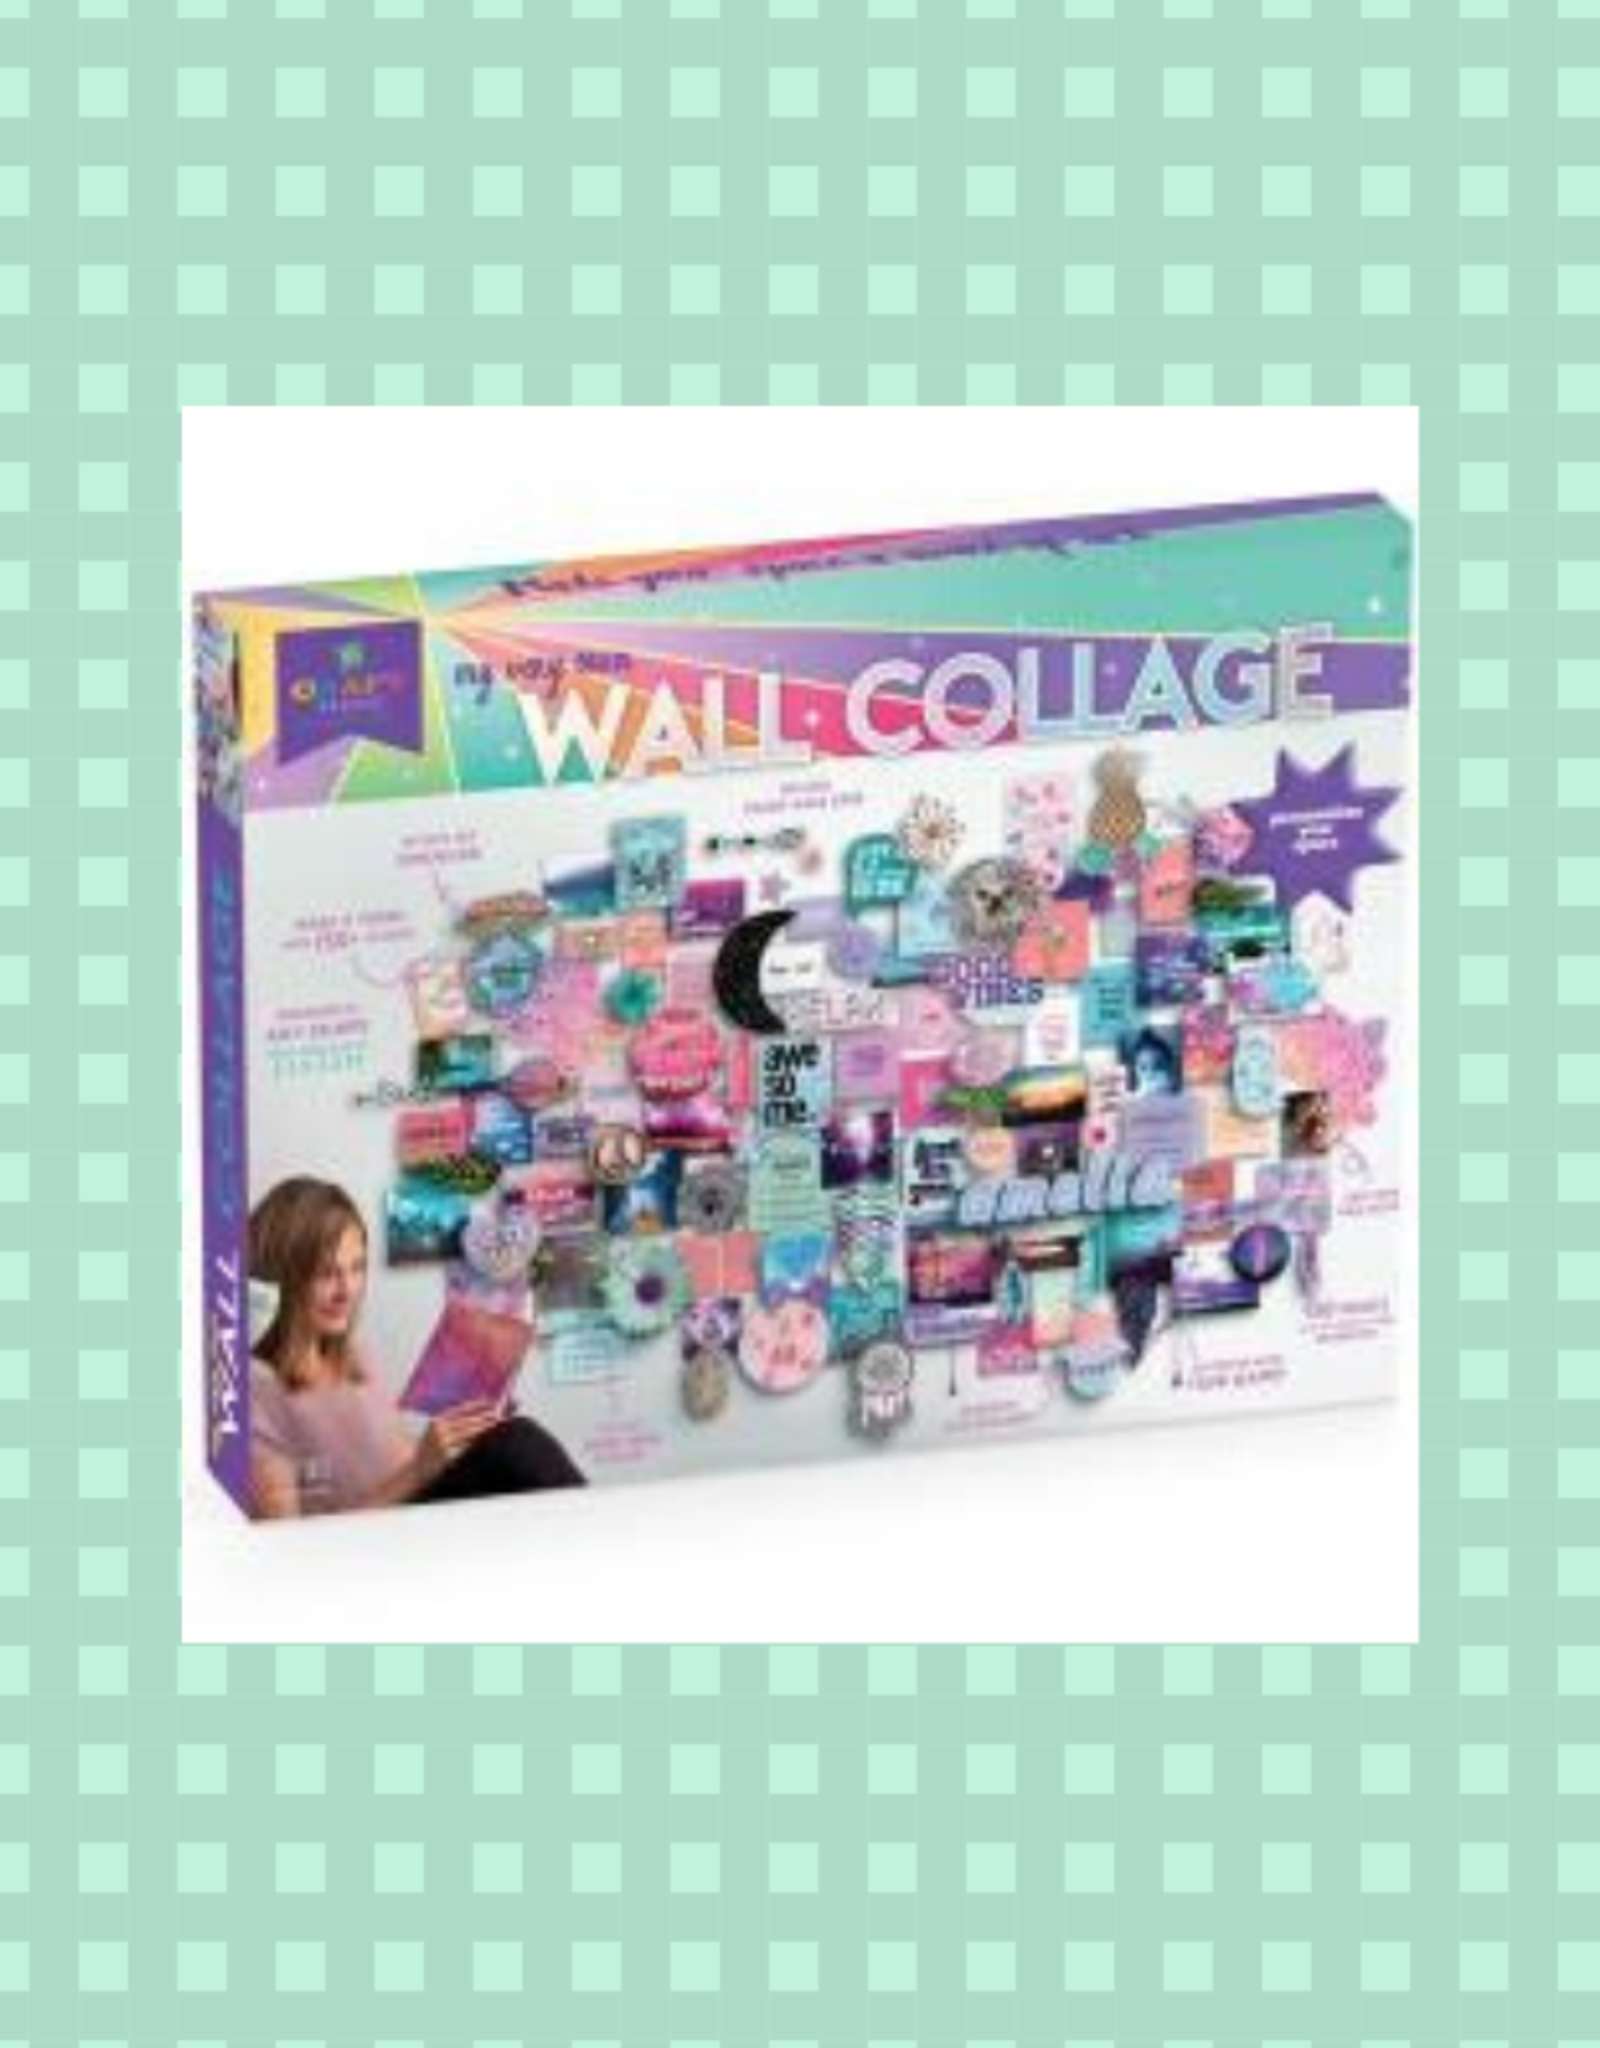 Craft-tastic My Very Own Wall Collage